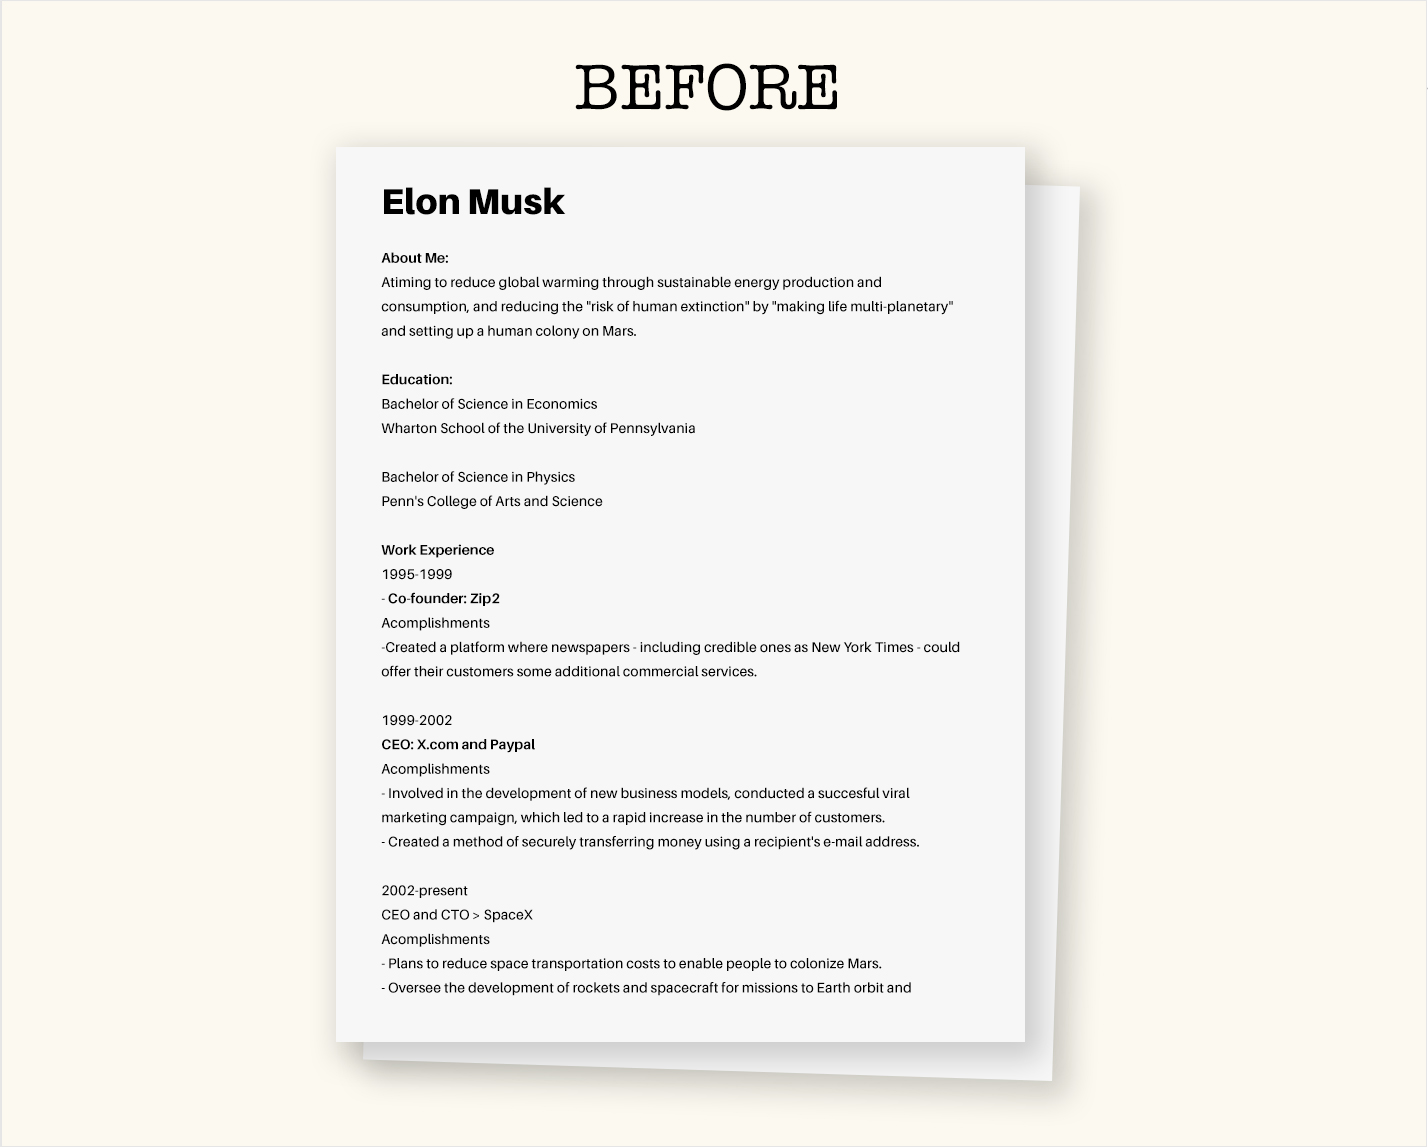 elon musk resume before - How To Set Up A Resume